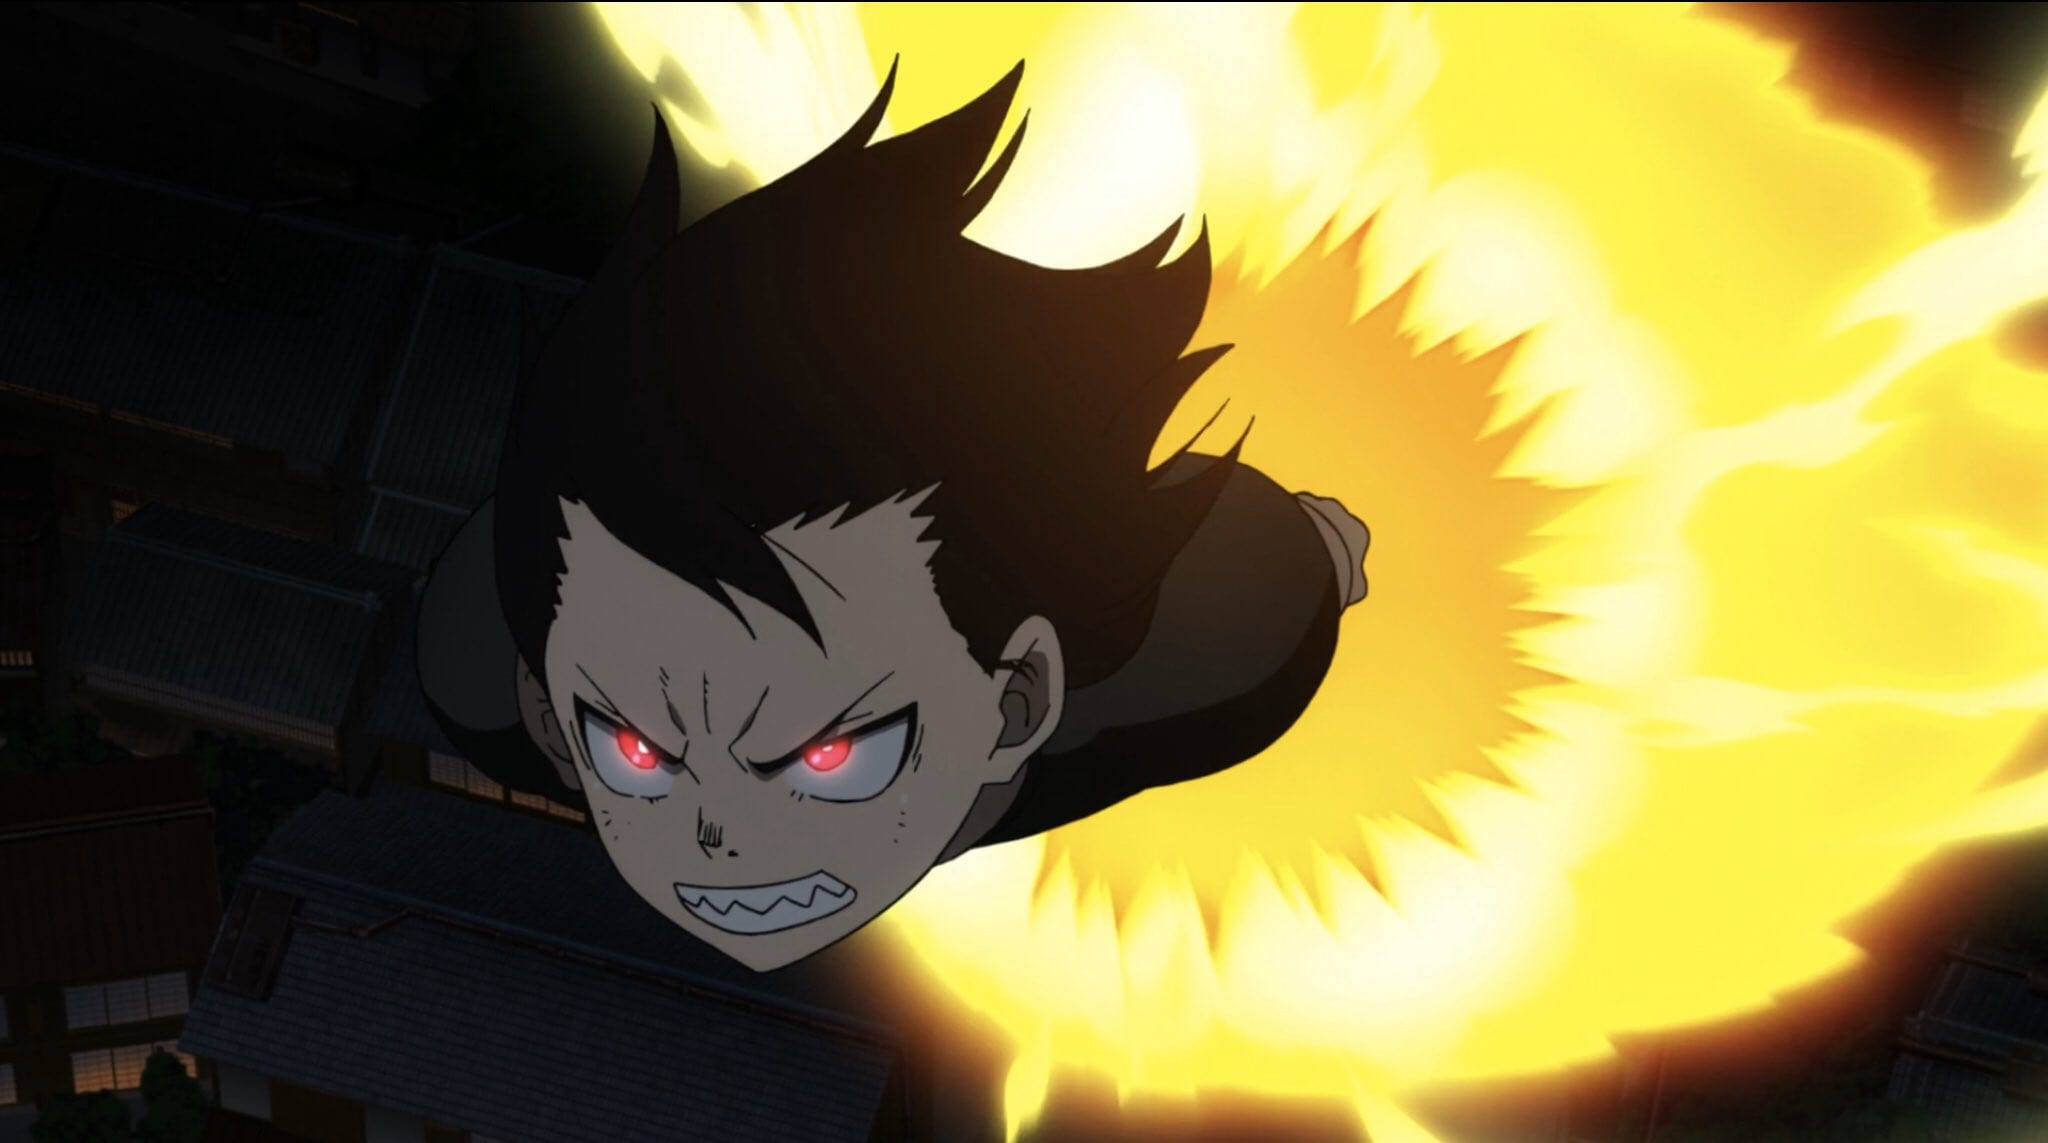 Fire Force Chapter 196 update